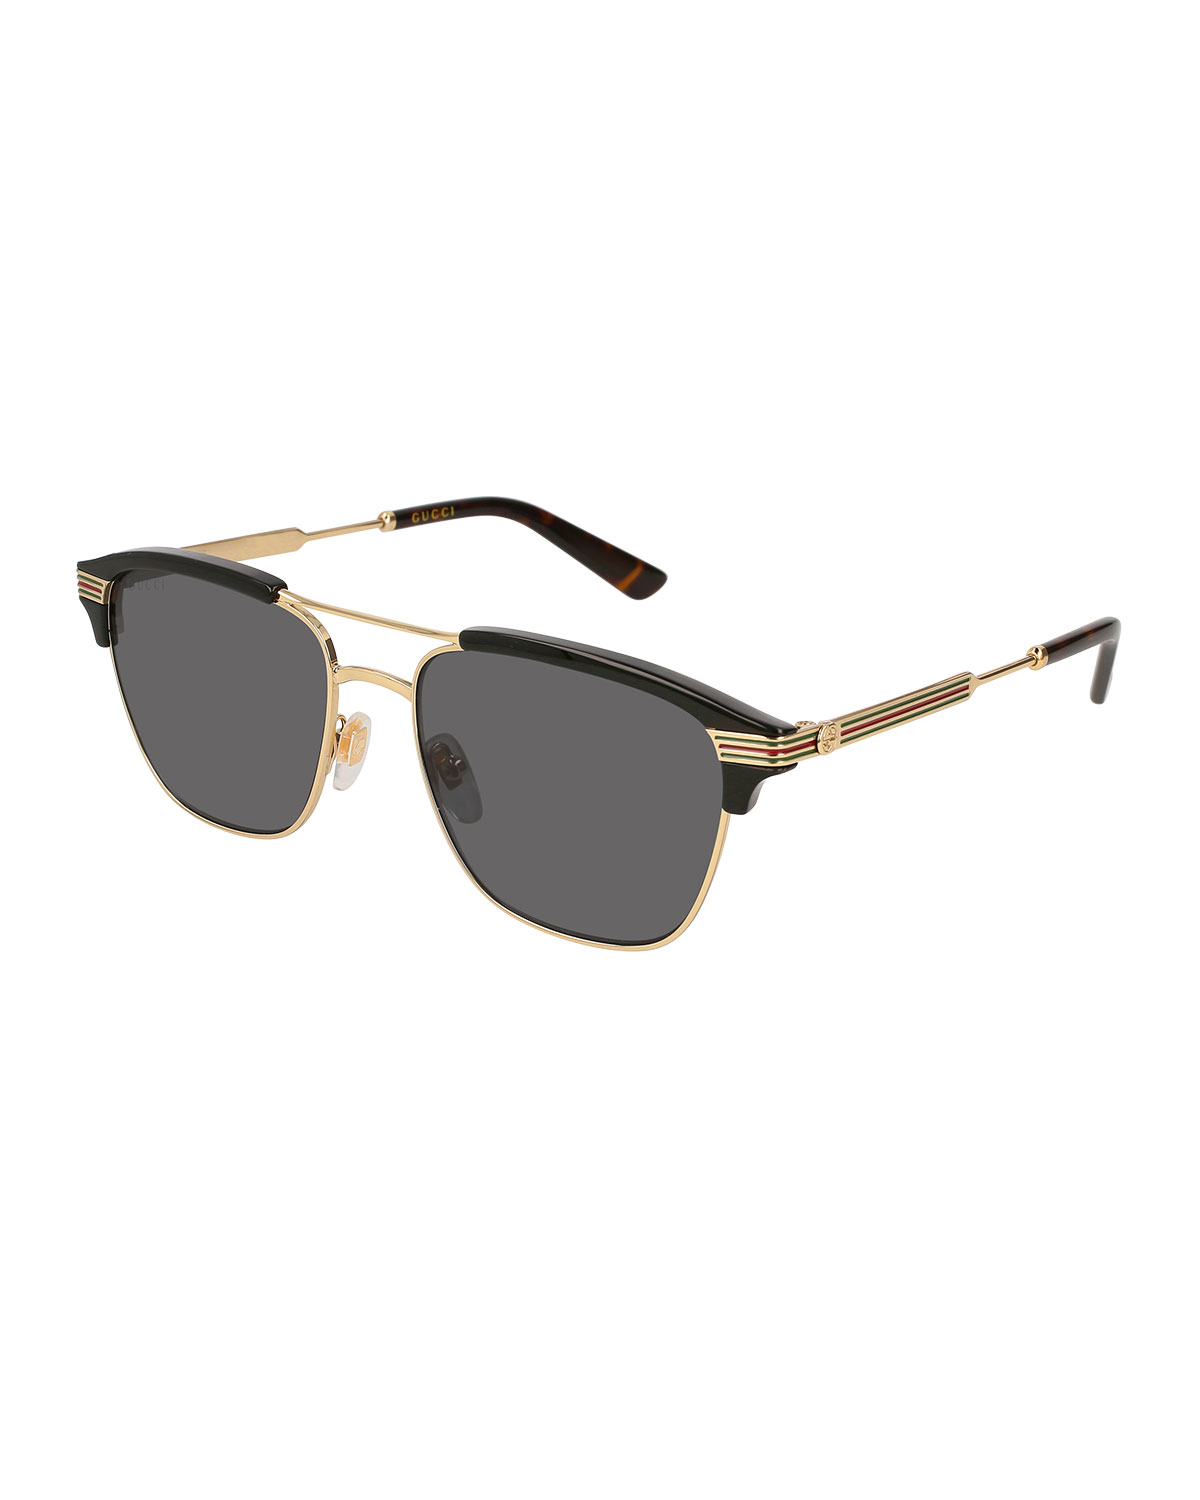 613b290b01f3 Gucci Retro Square Aviator Sunglasses